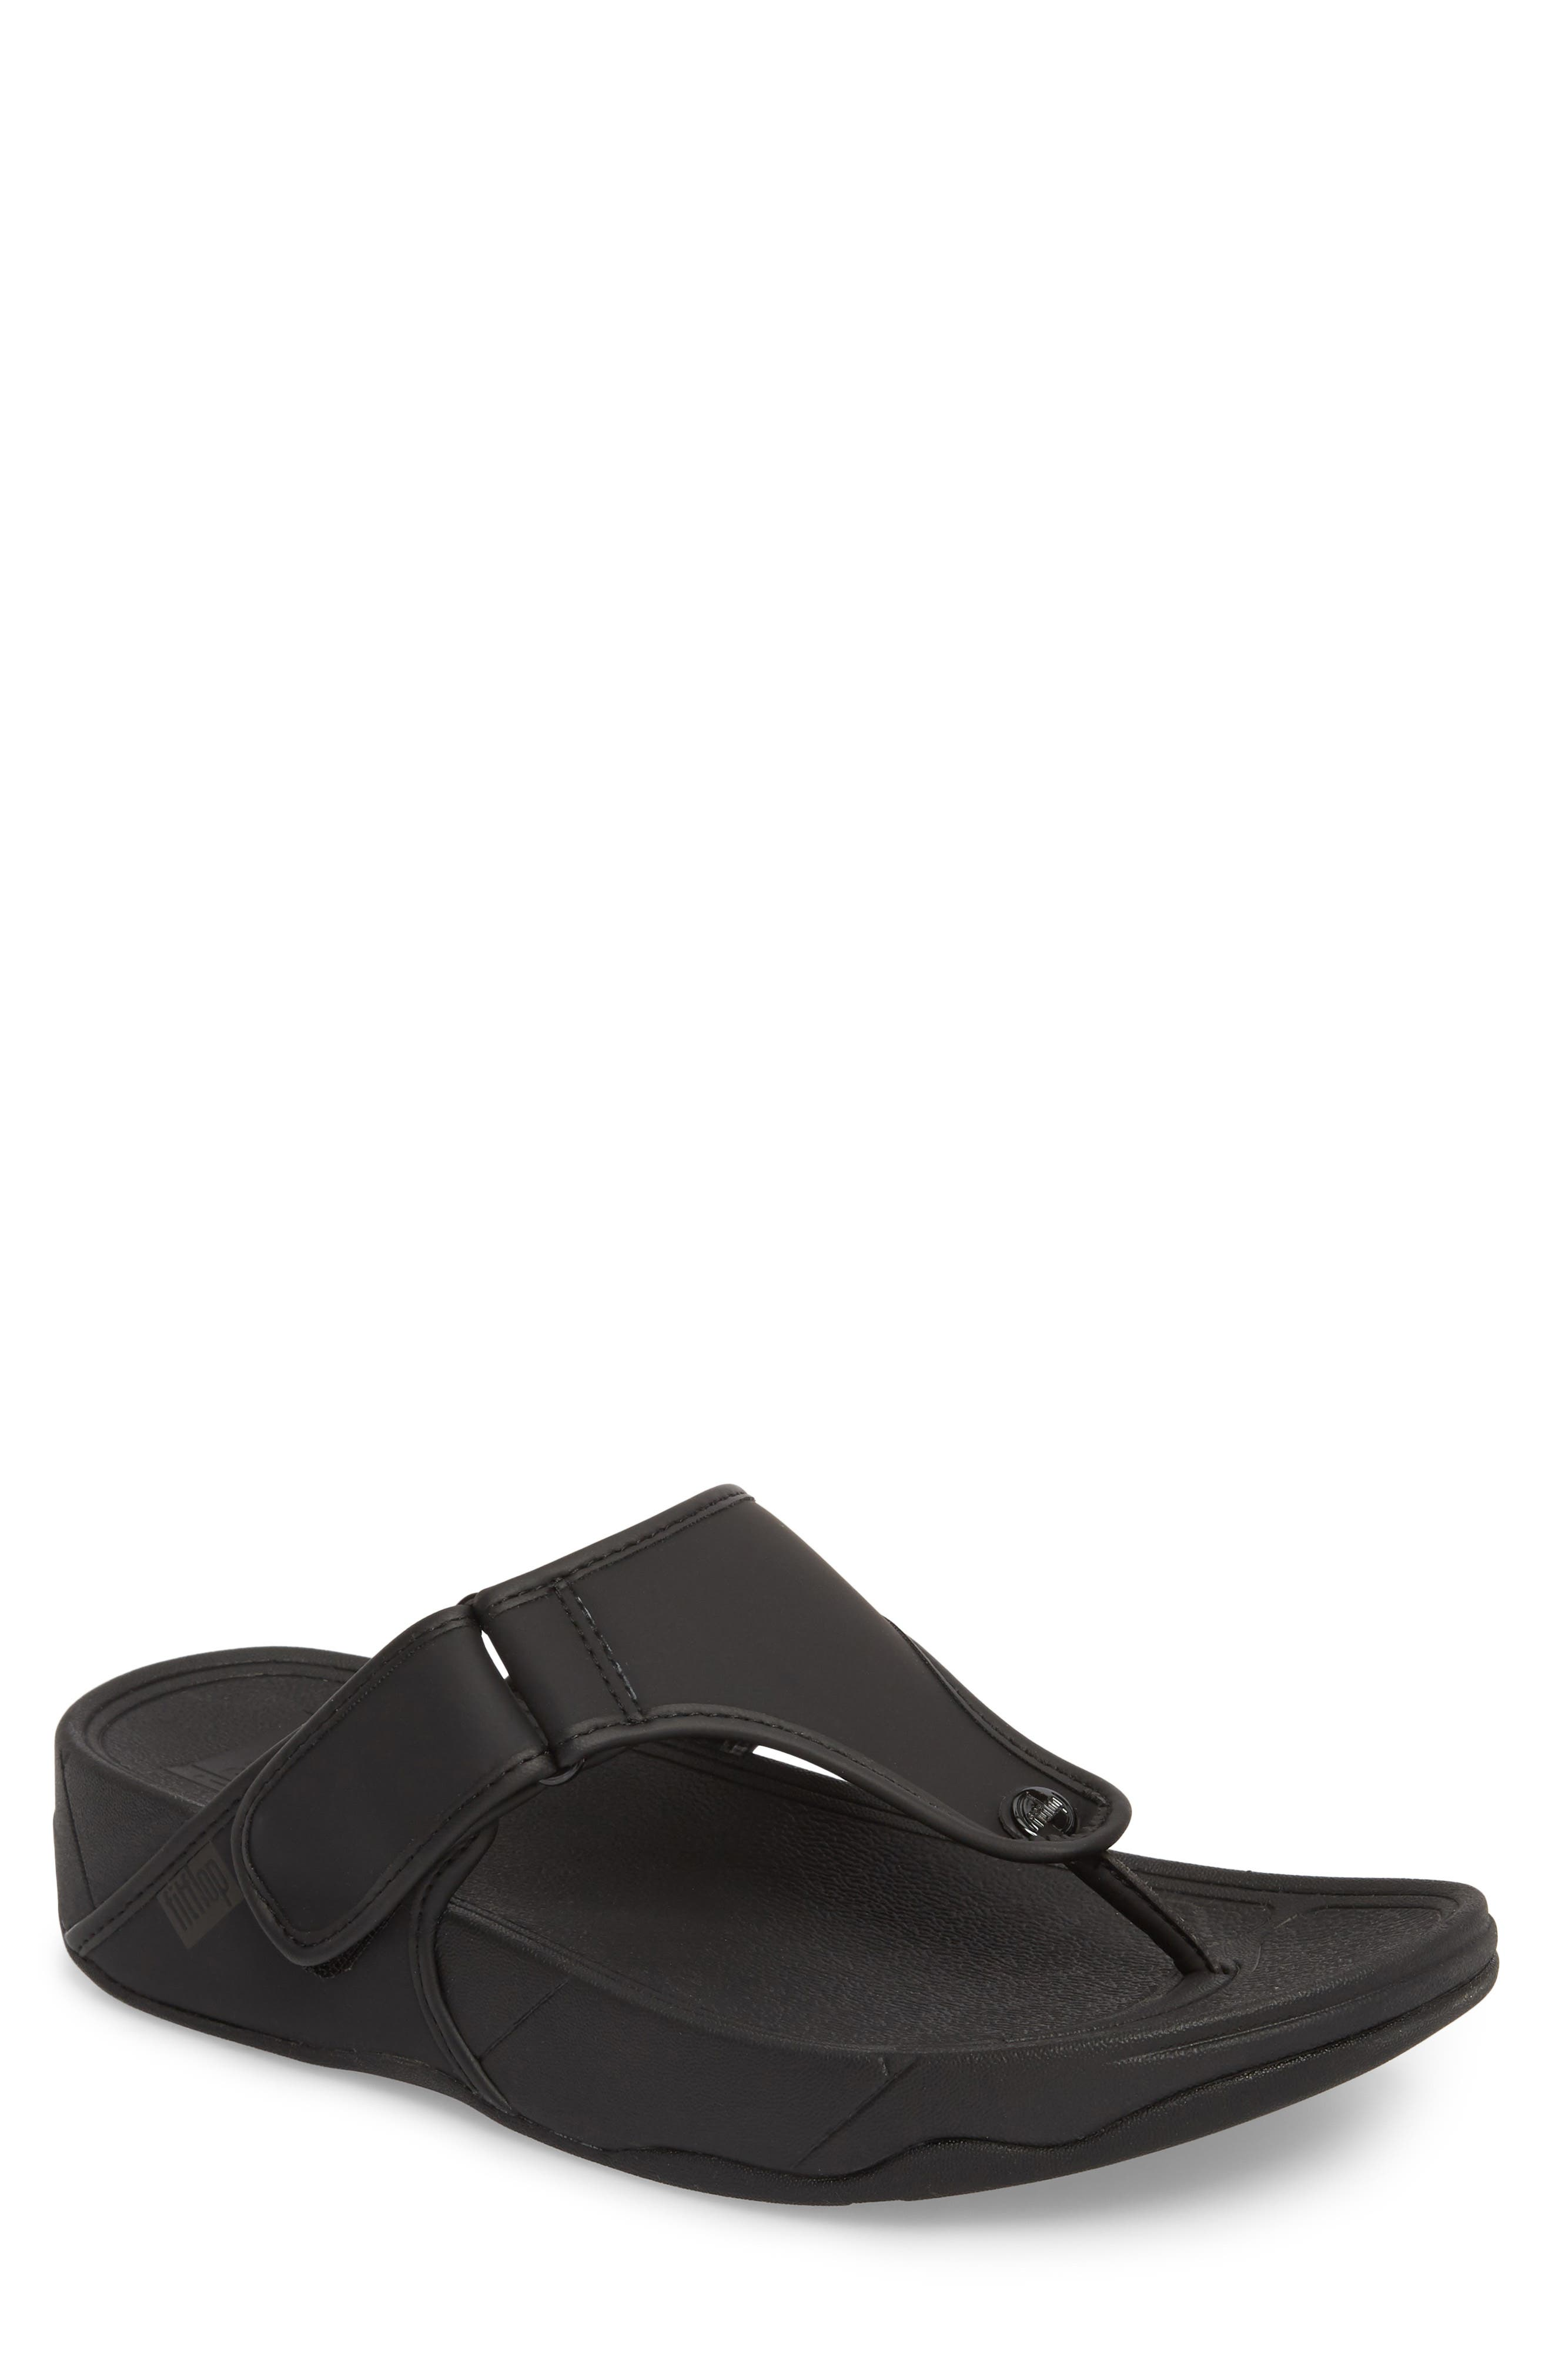 Trakk<sup>™</sup> II Sandal,                             Main thumbnail 1, color,                             Black Neoprene